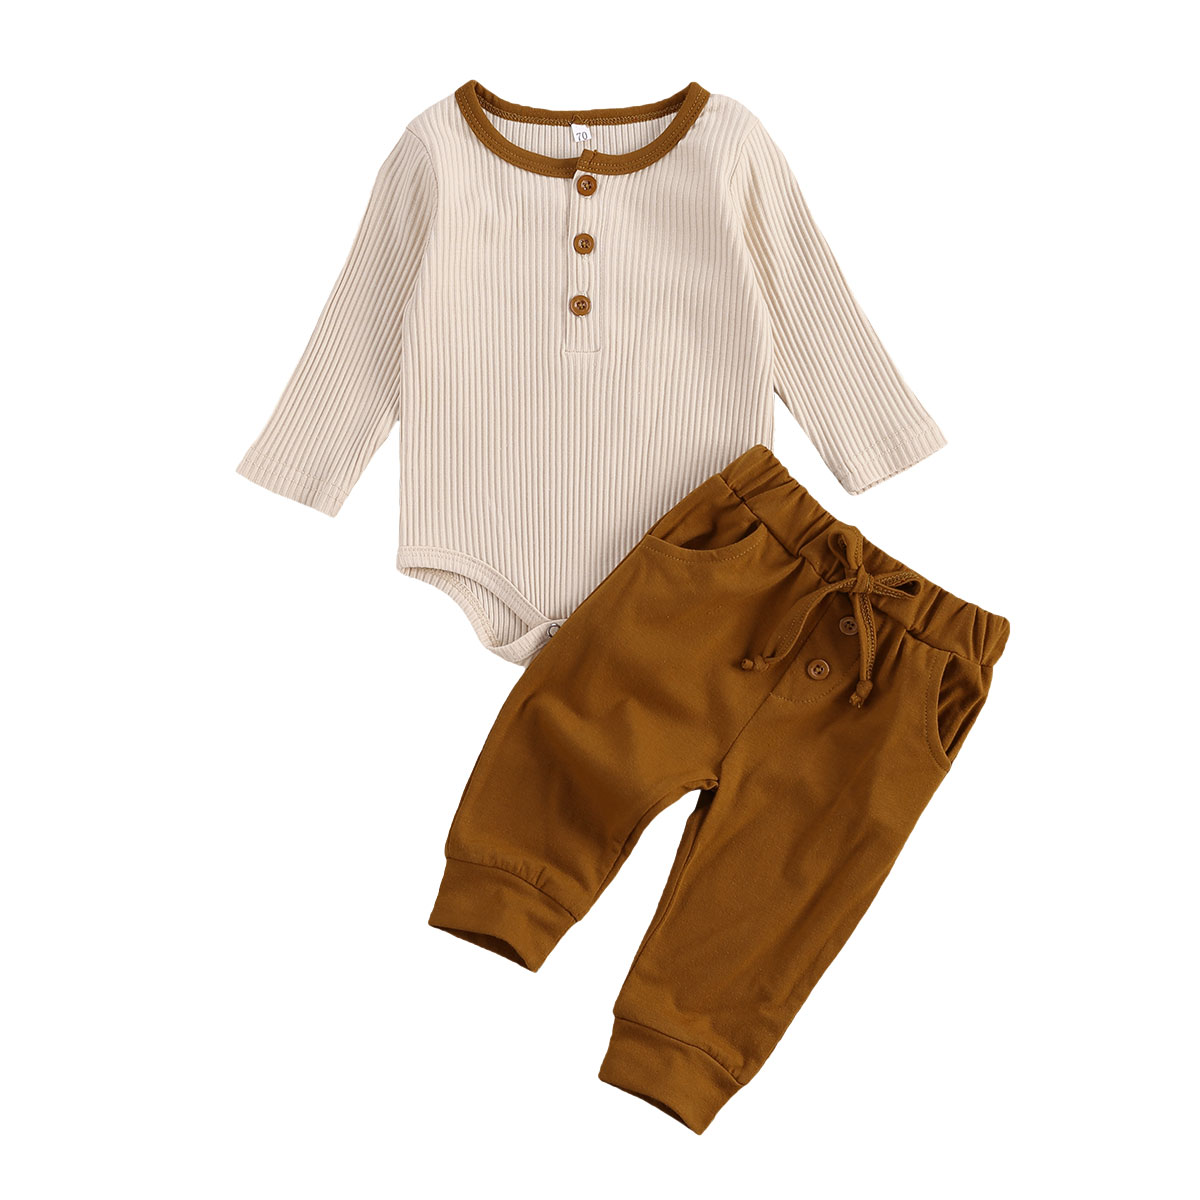 0-18M Newborn Baby Boys Clothes Sets Solid Button Long Sleeve Romper Tops Bottoms Pants